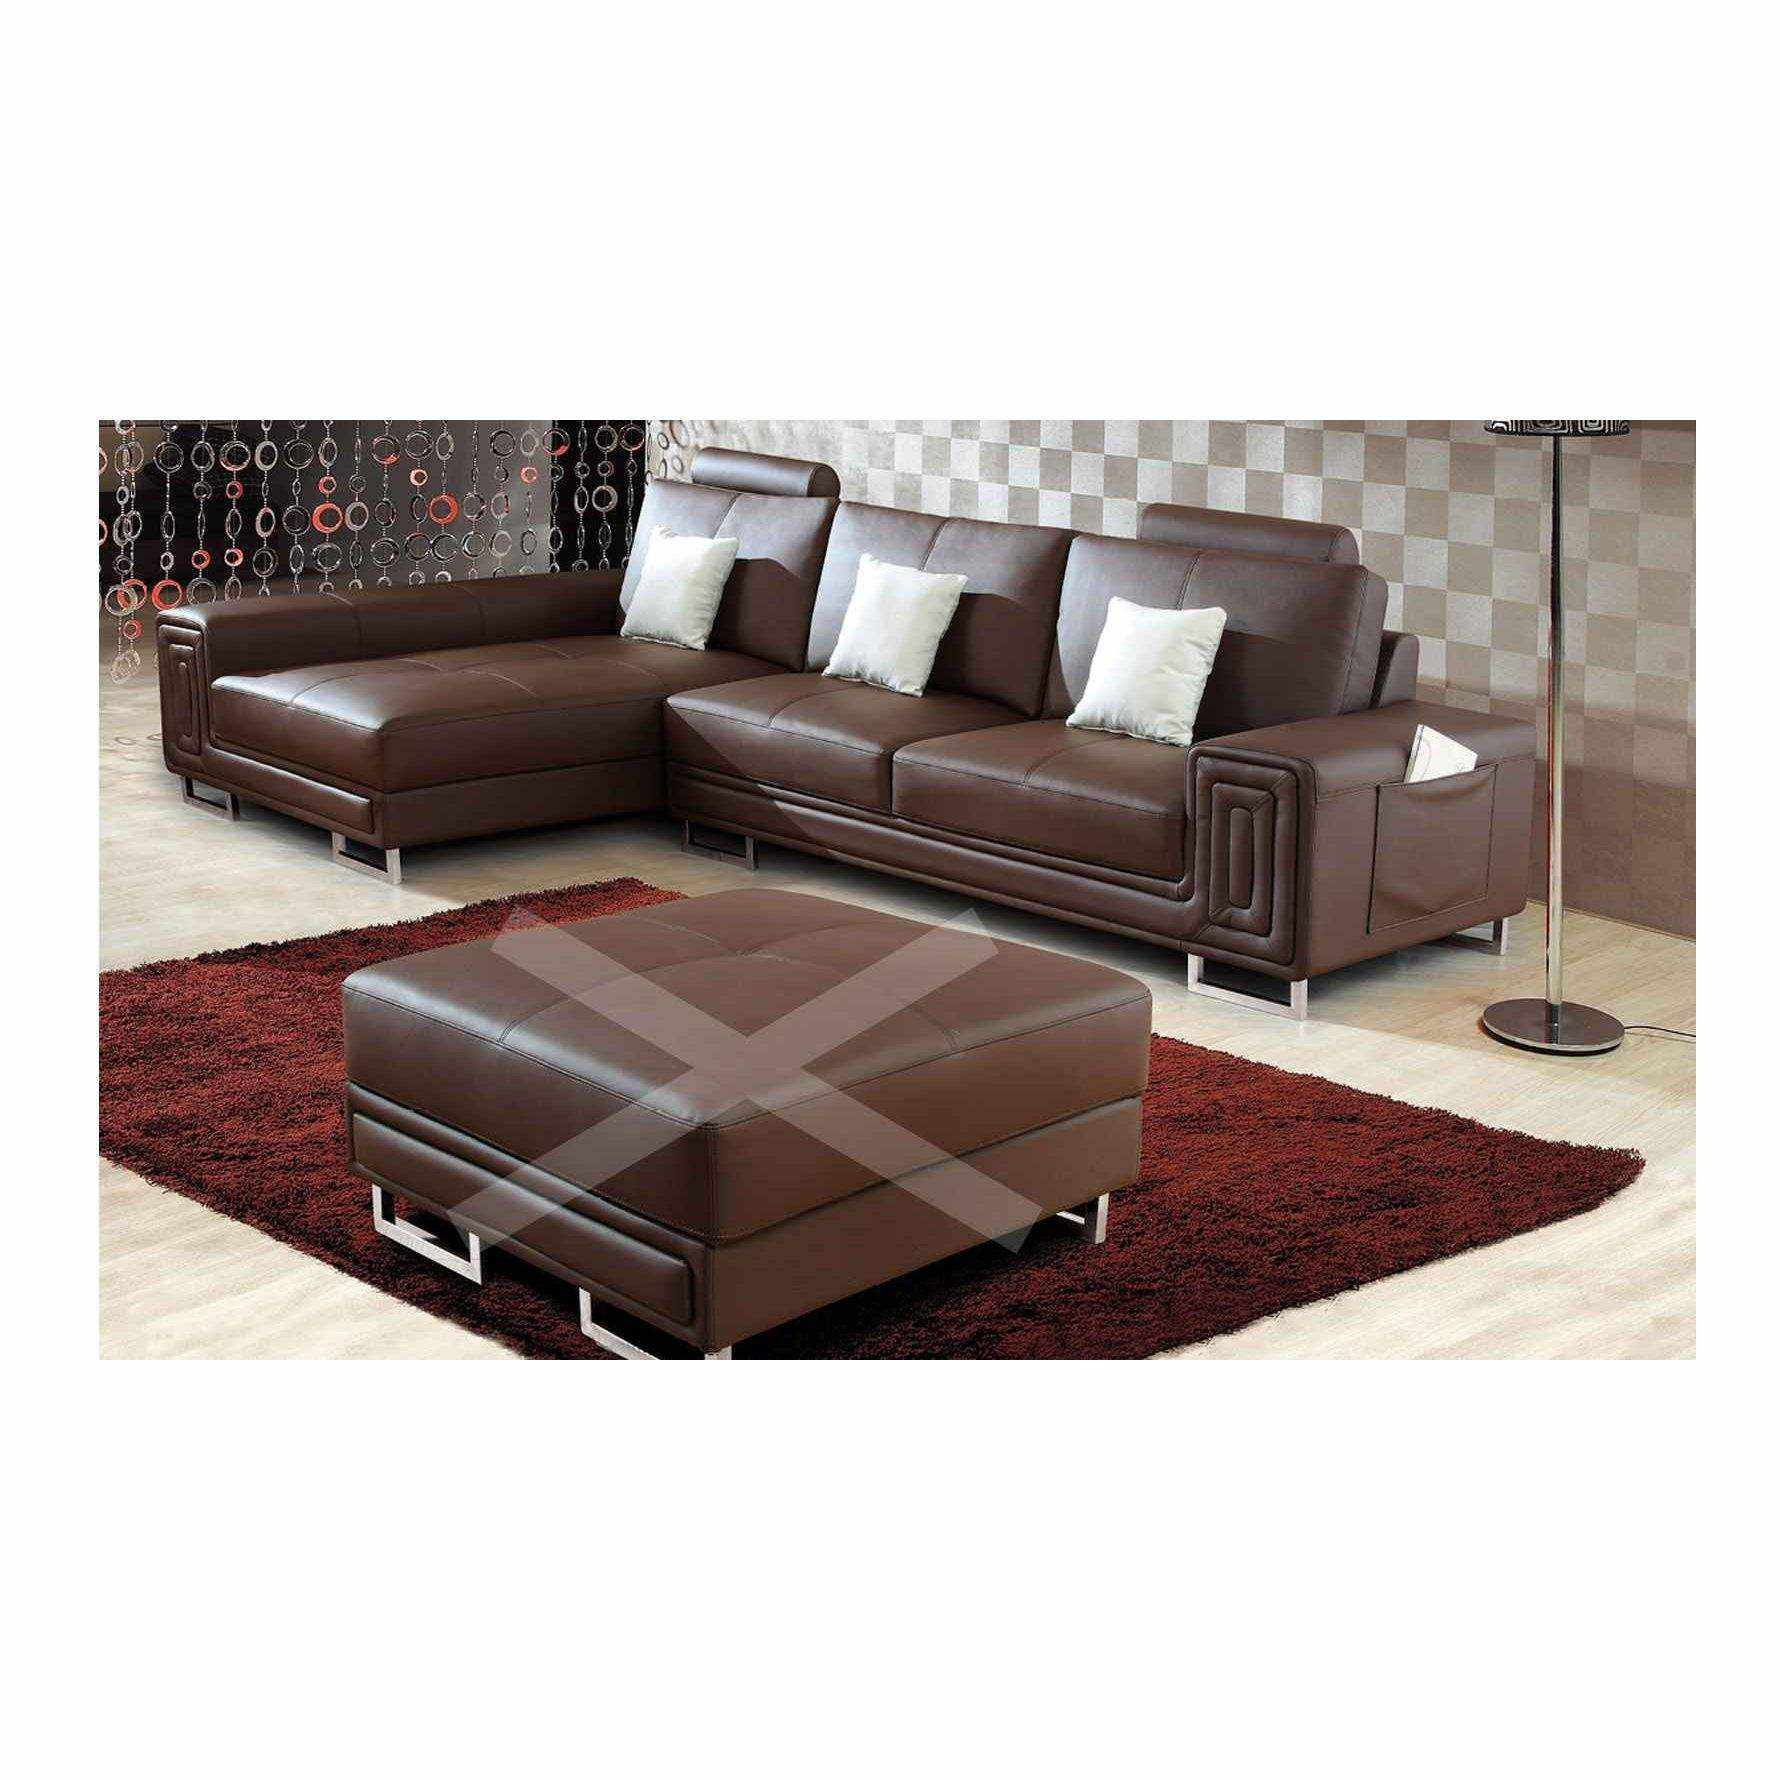 Deco in paris canape cuir d angle marron tetieres relax for Canape cuir paris